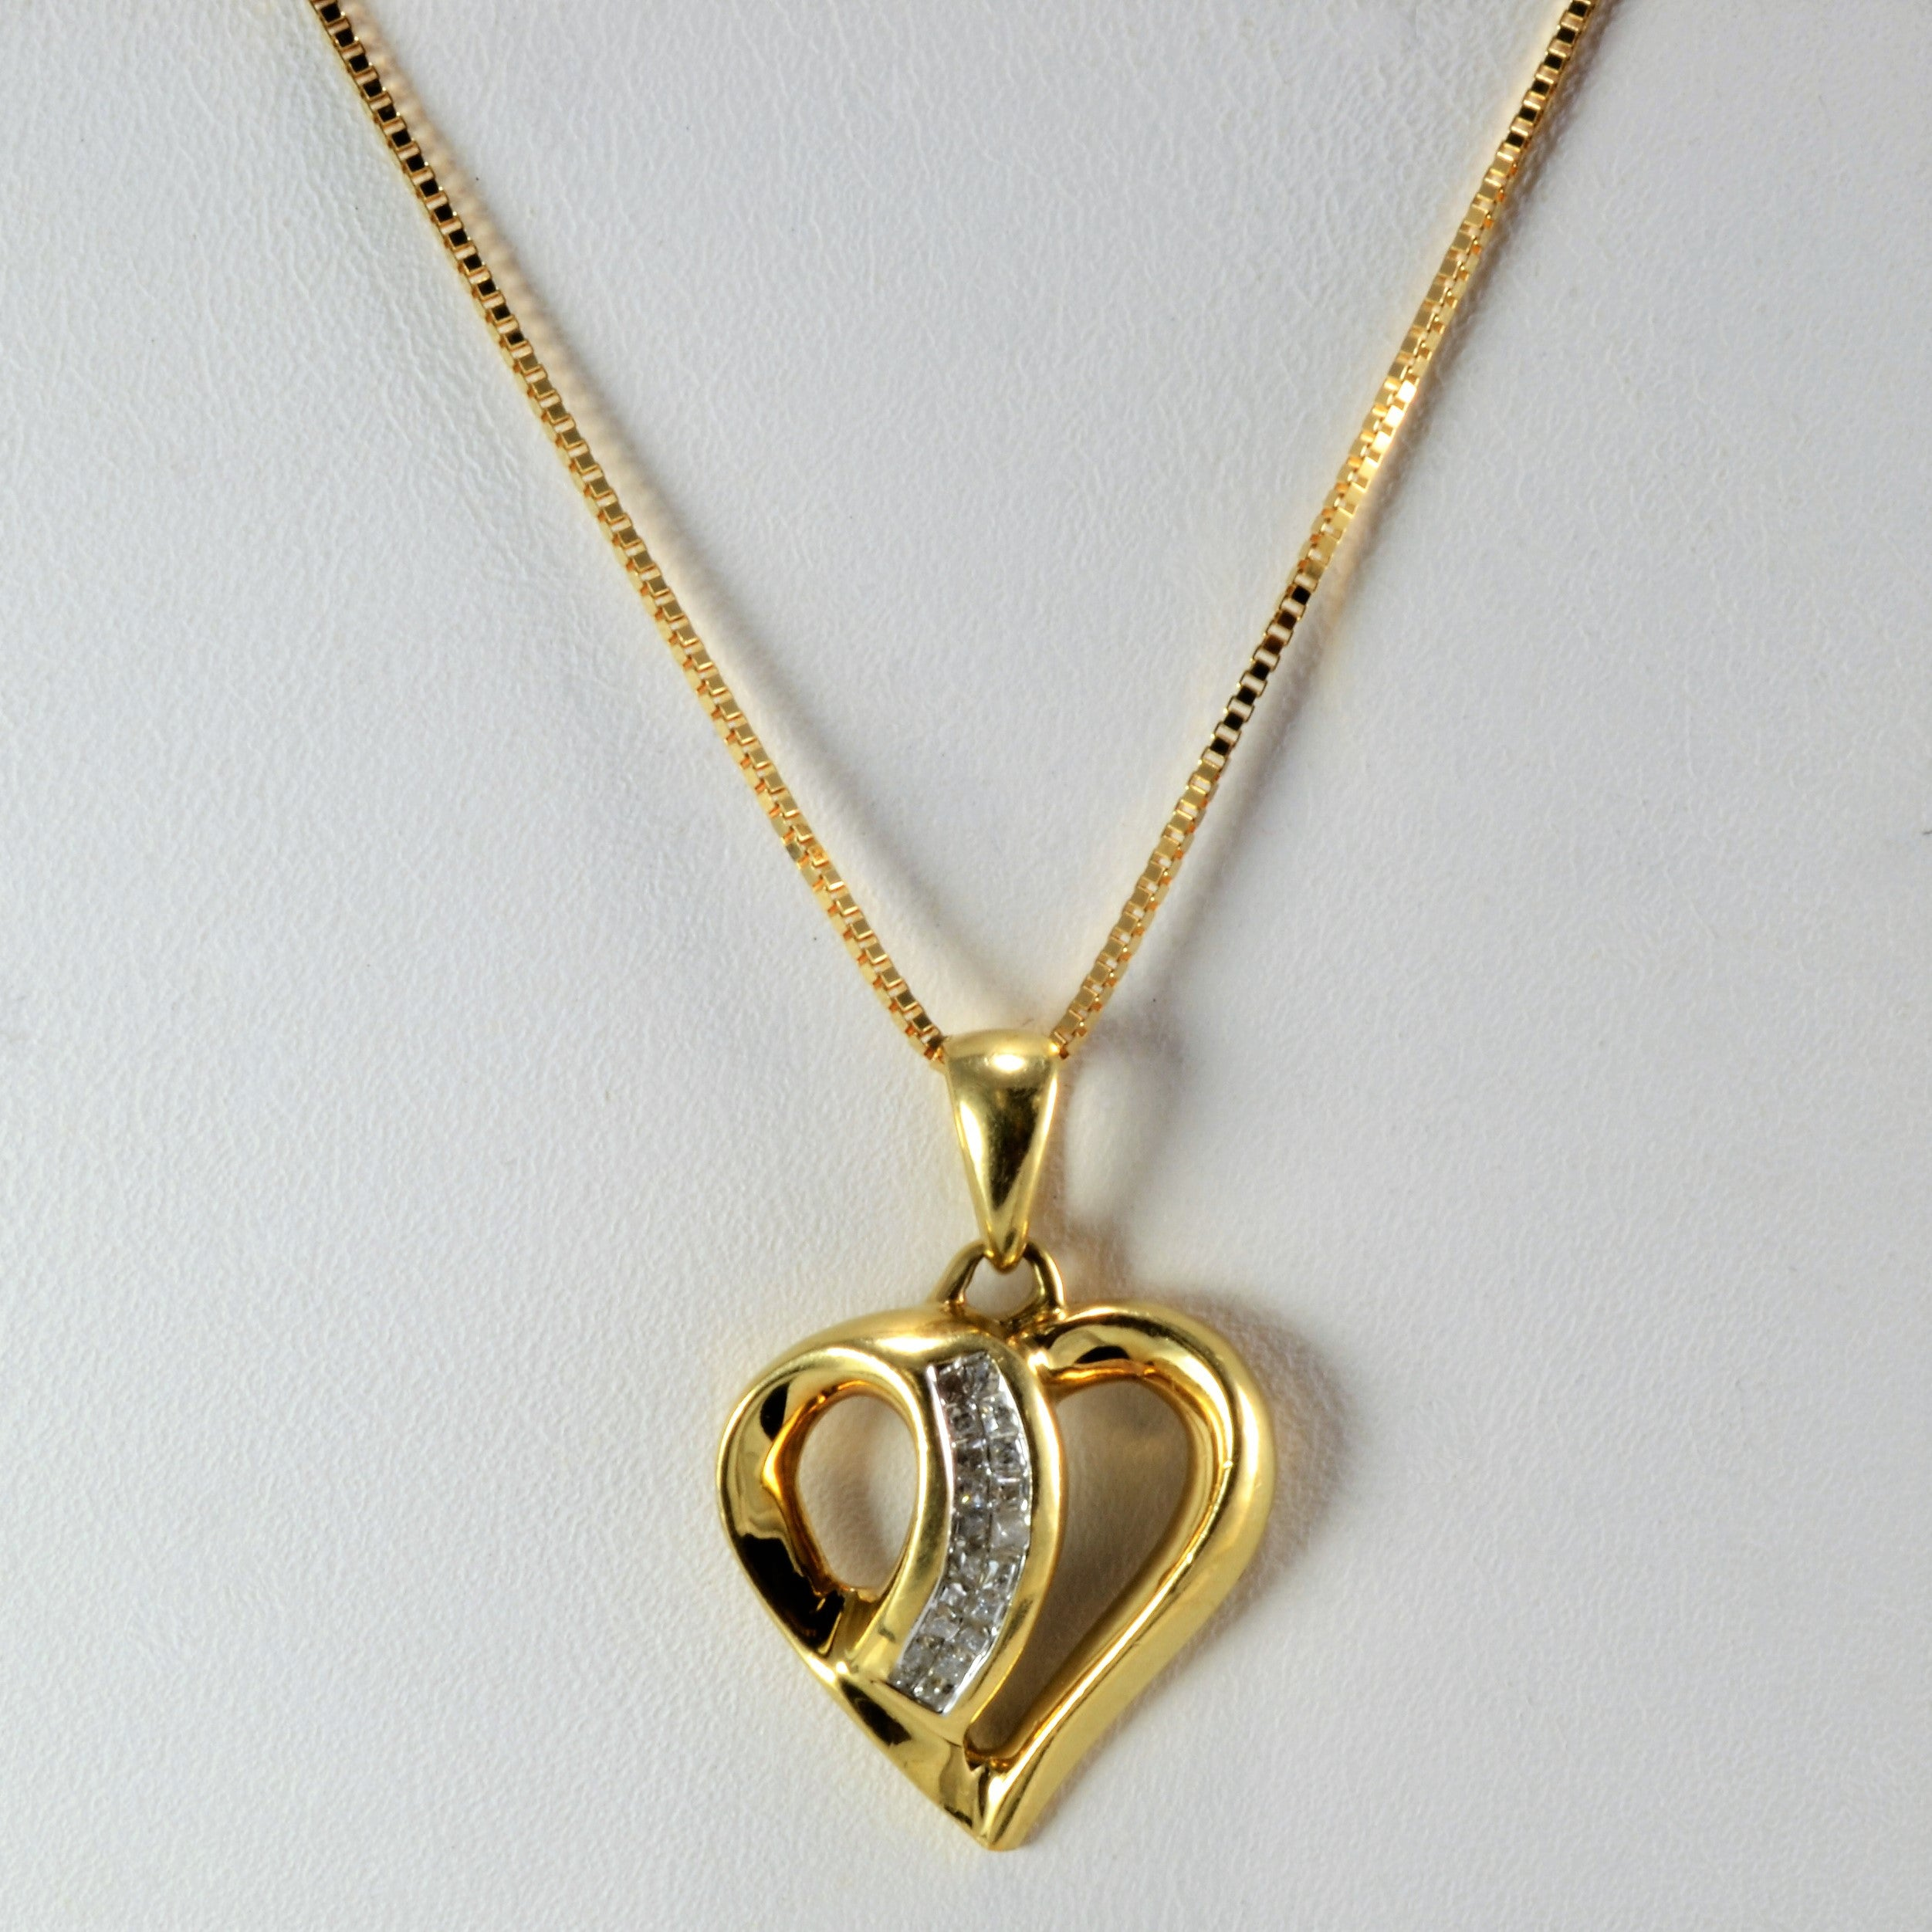 Heart shape diamond pendant necklace 100 ways heart shape diamond pendant necklace aloadofball Gallery